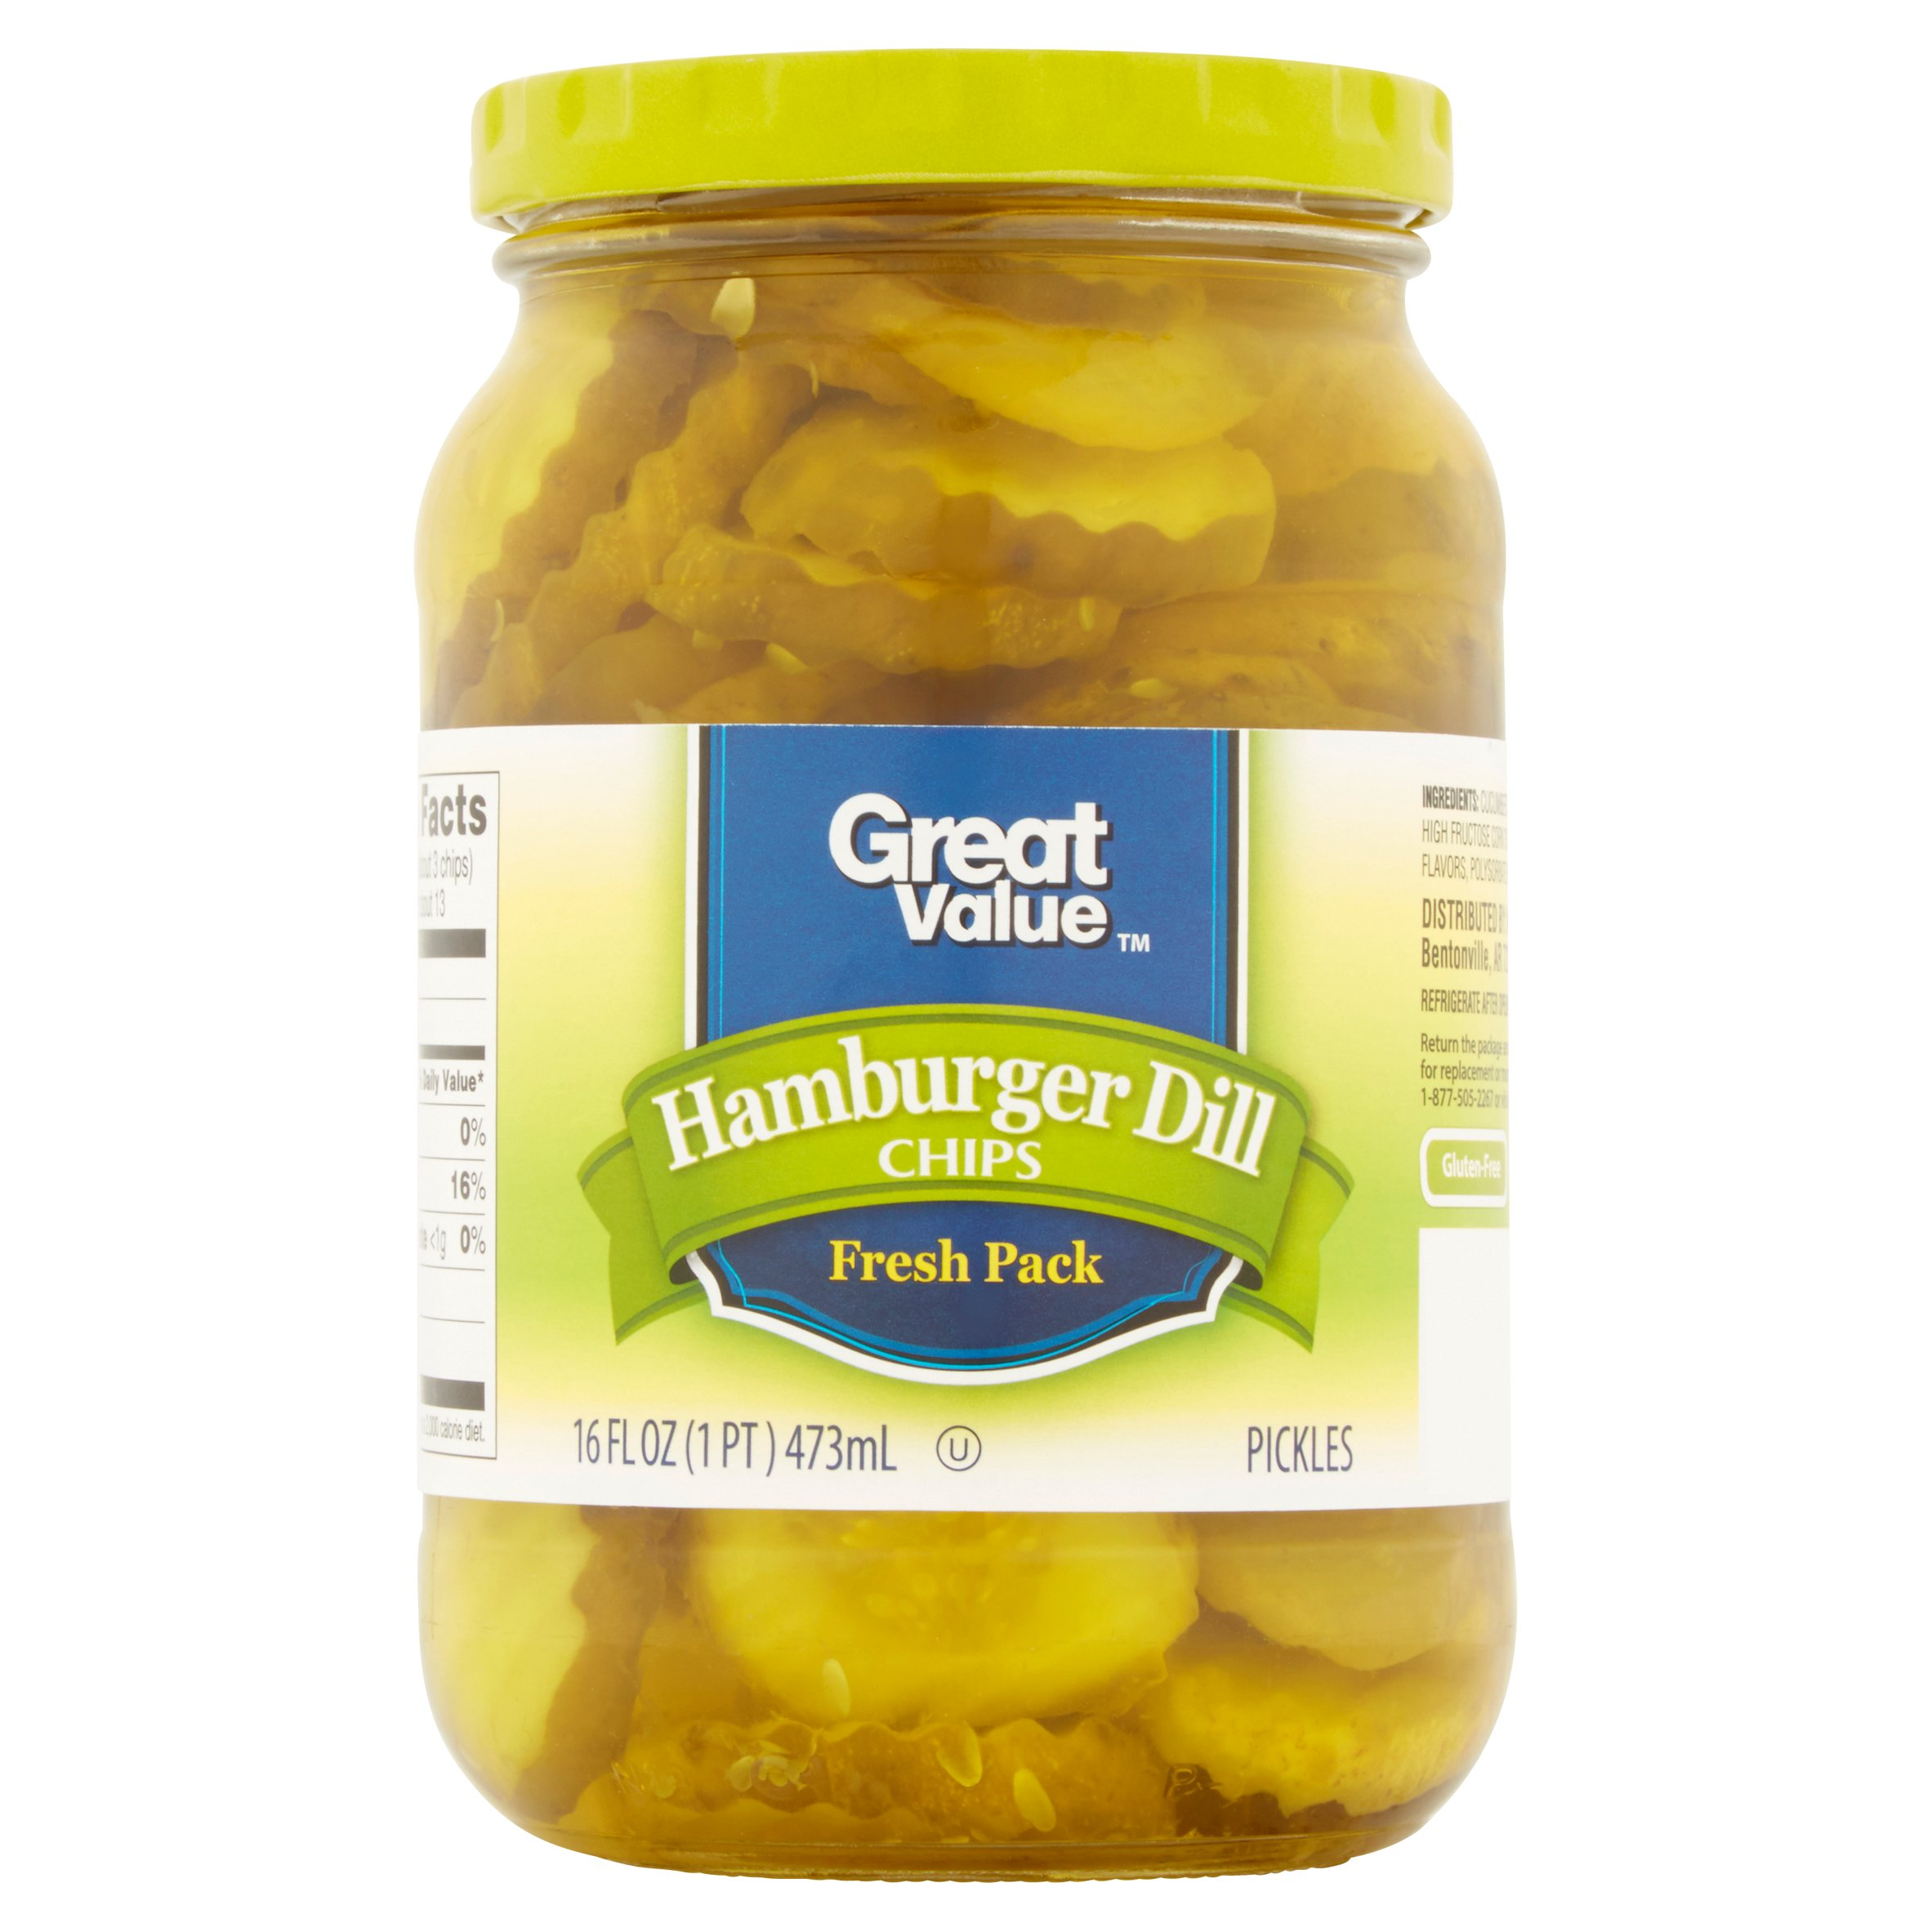 Great Value Hamburger Dill Chips Pickles 16fl oz by Wal-Mart Stores, Inc.